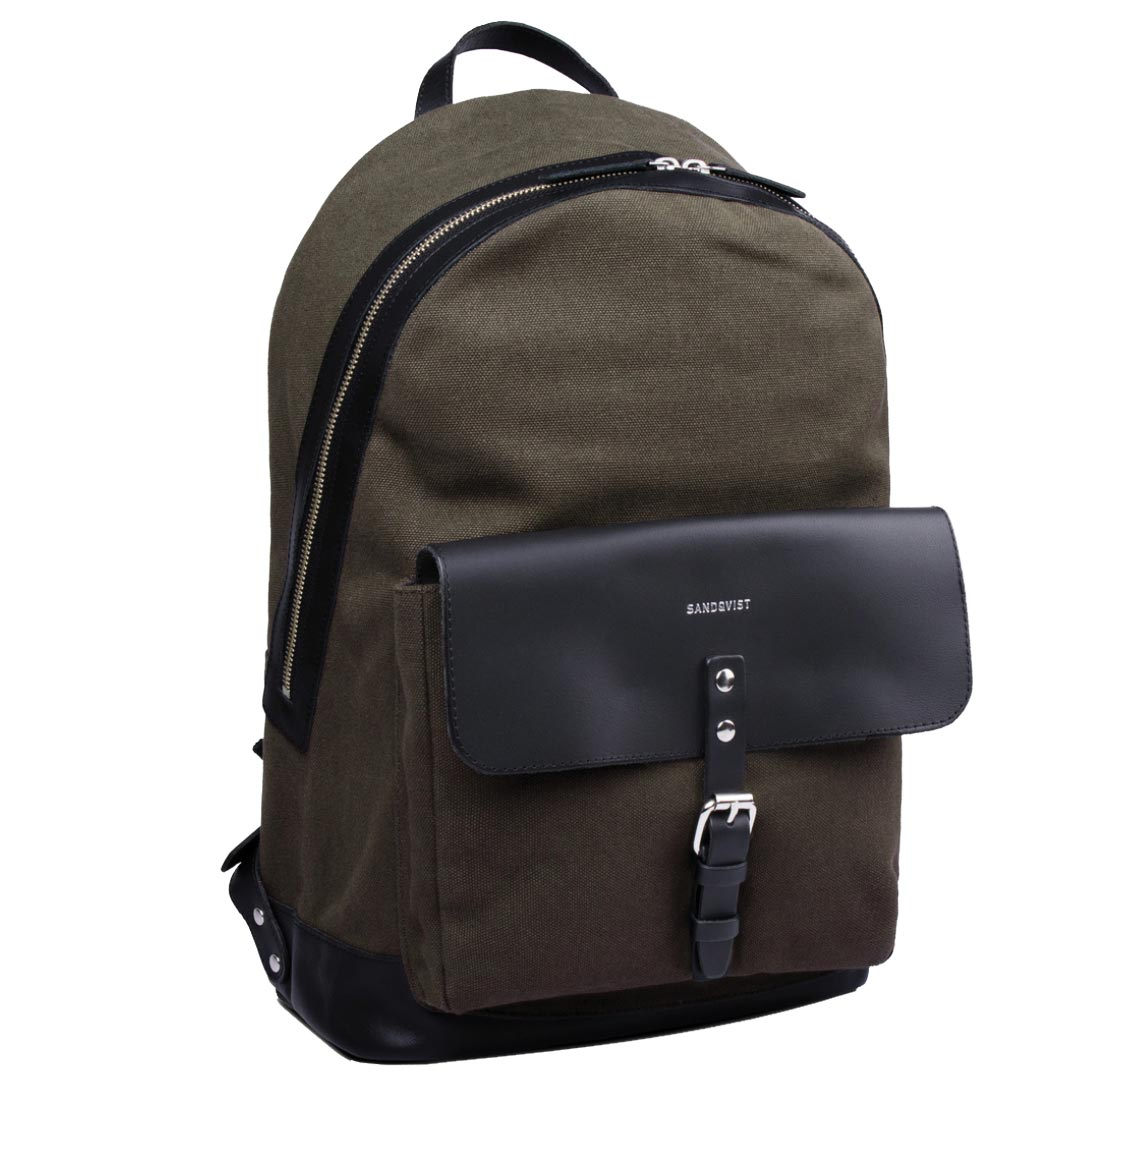 Sandqvist Andor Beluga Backpack